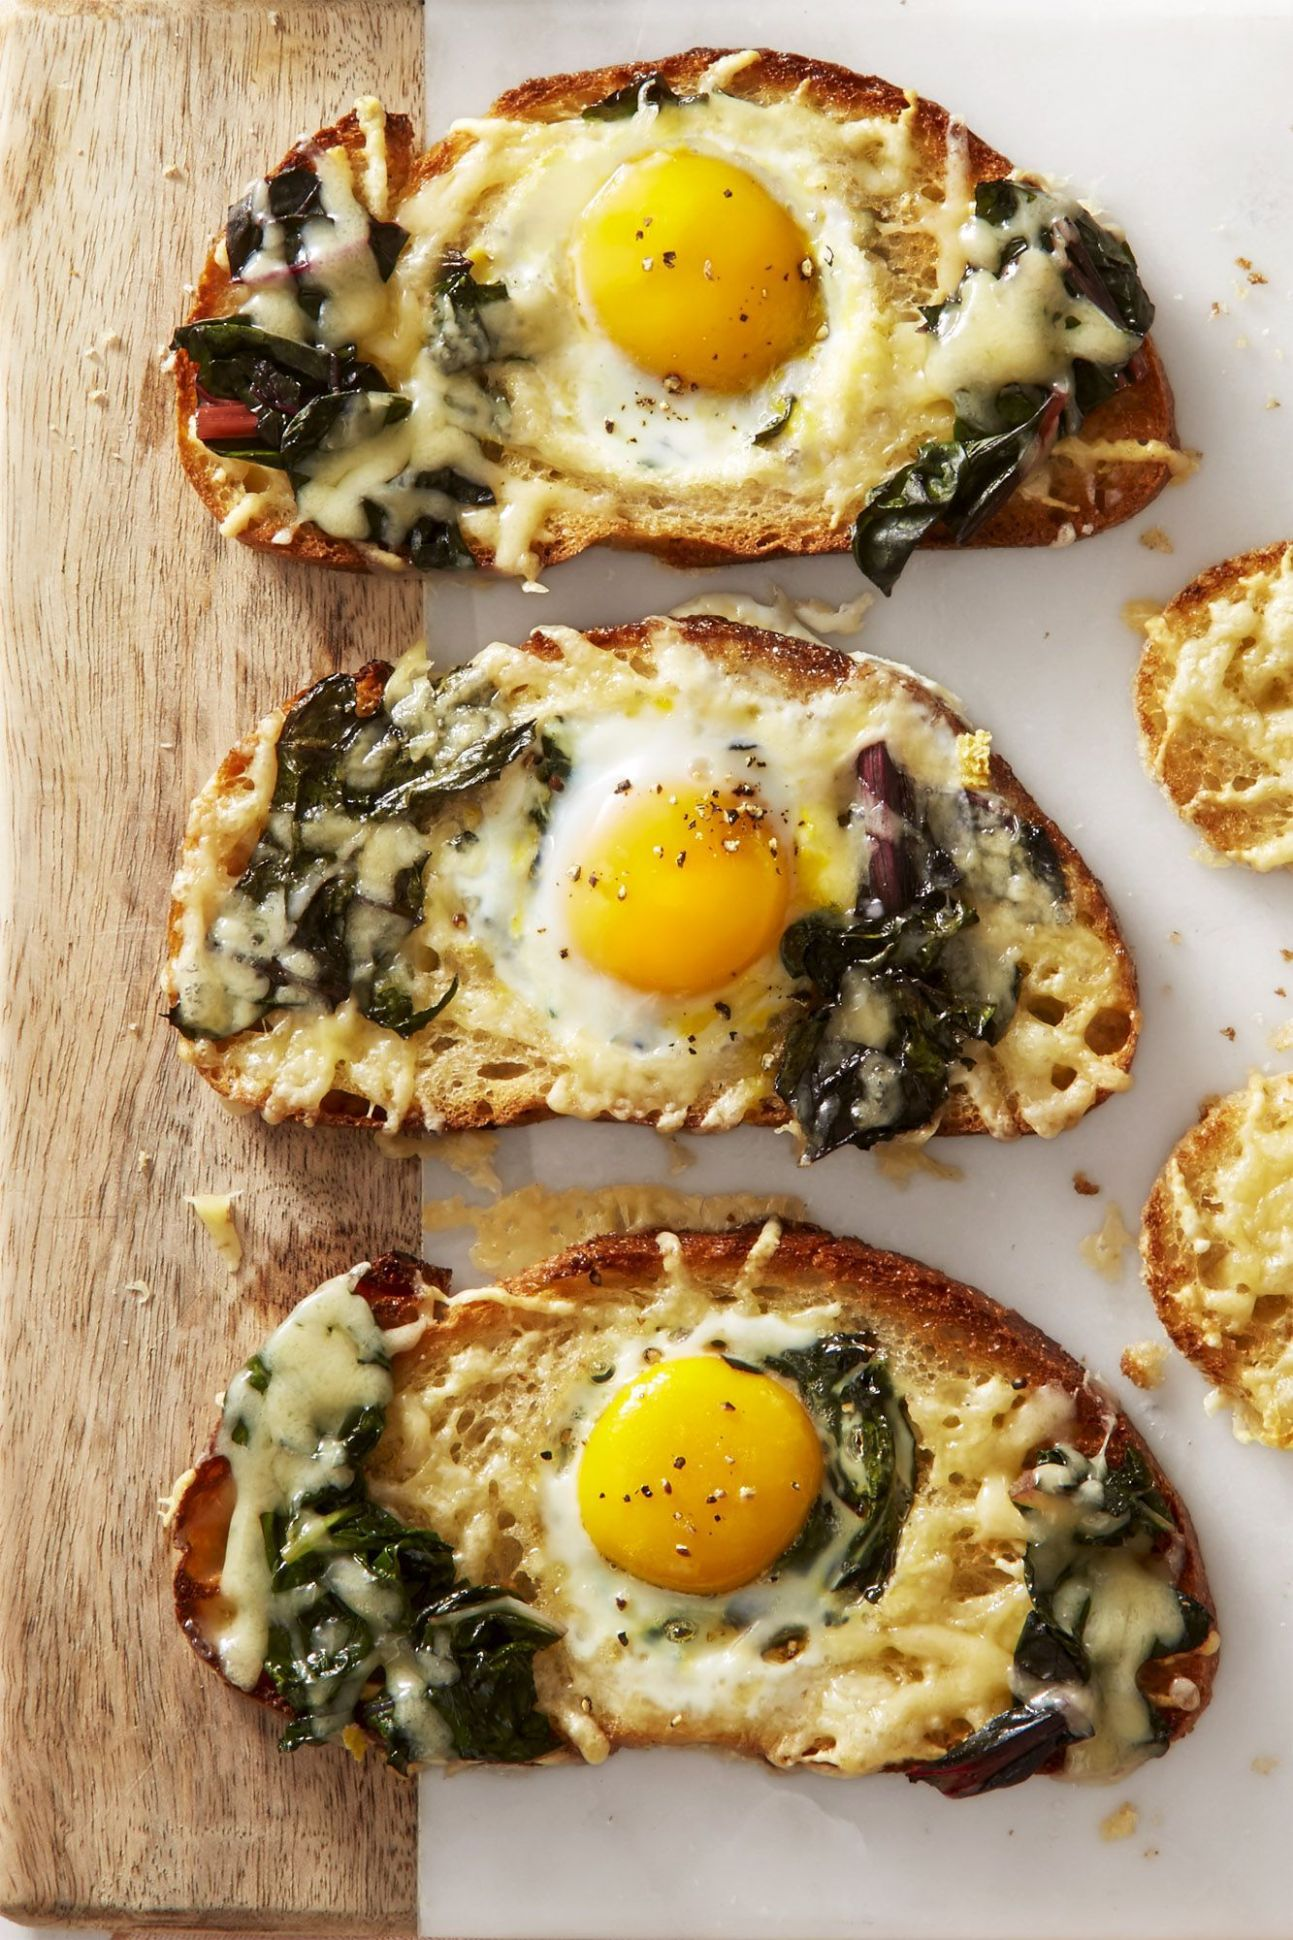 8+ Easy Egg Recipes - Ways to Cook Eggs for Breakfast - Breakfast Recipes Using Eggs